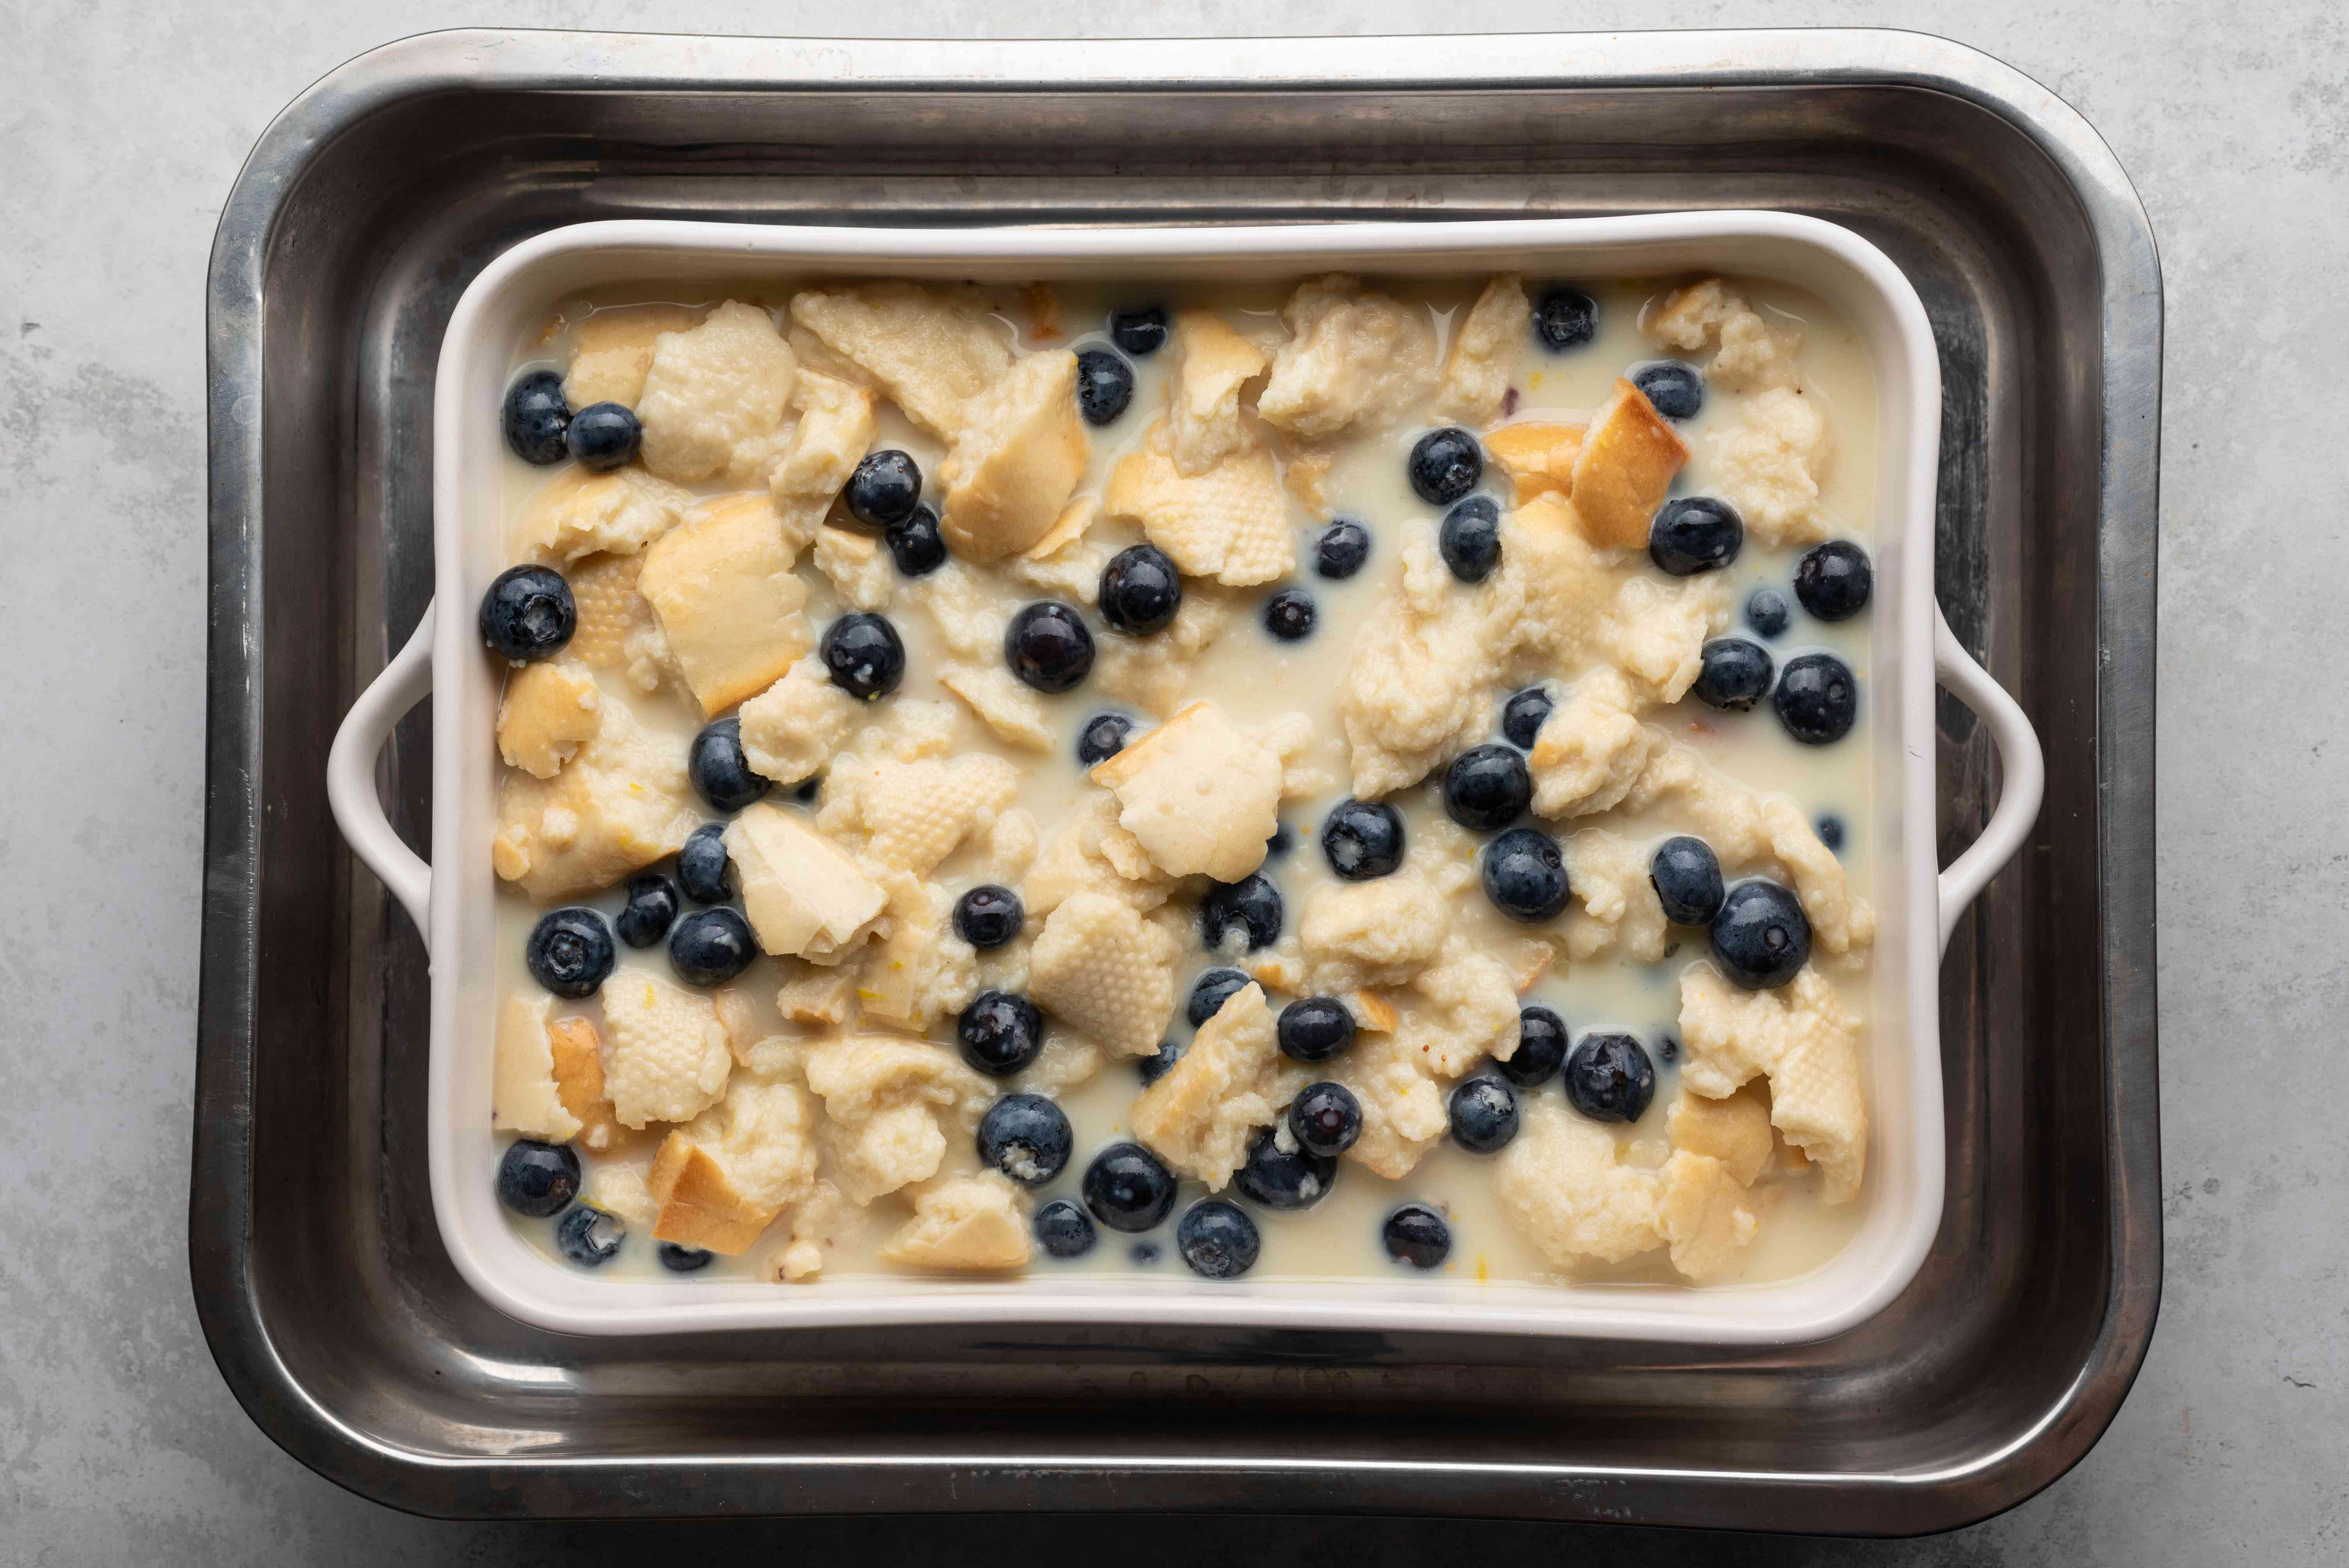 bread pudding mix in a baking dish